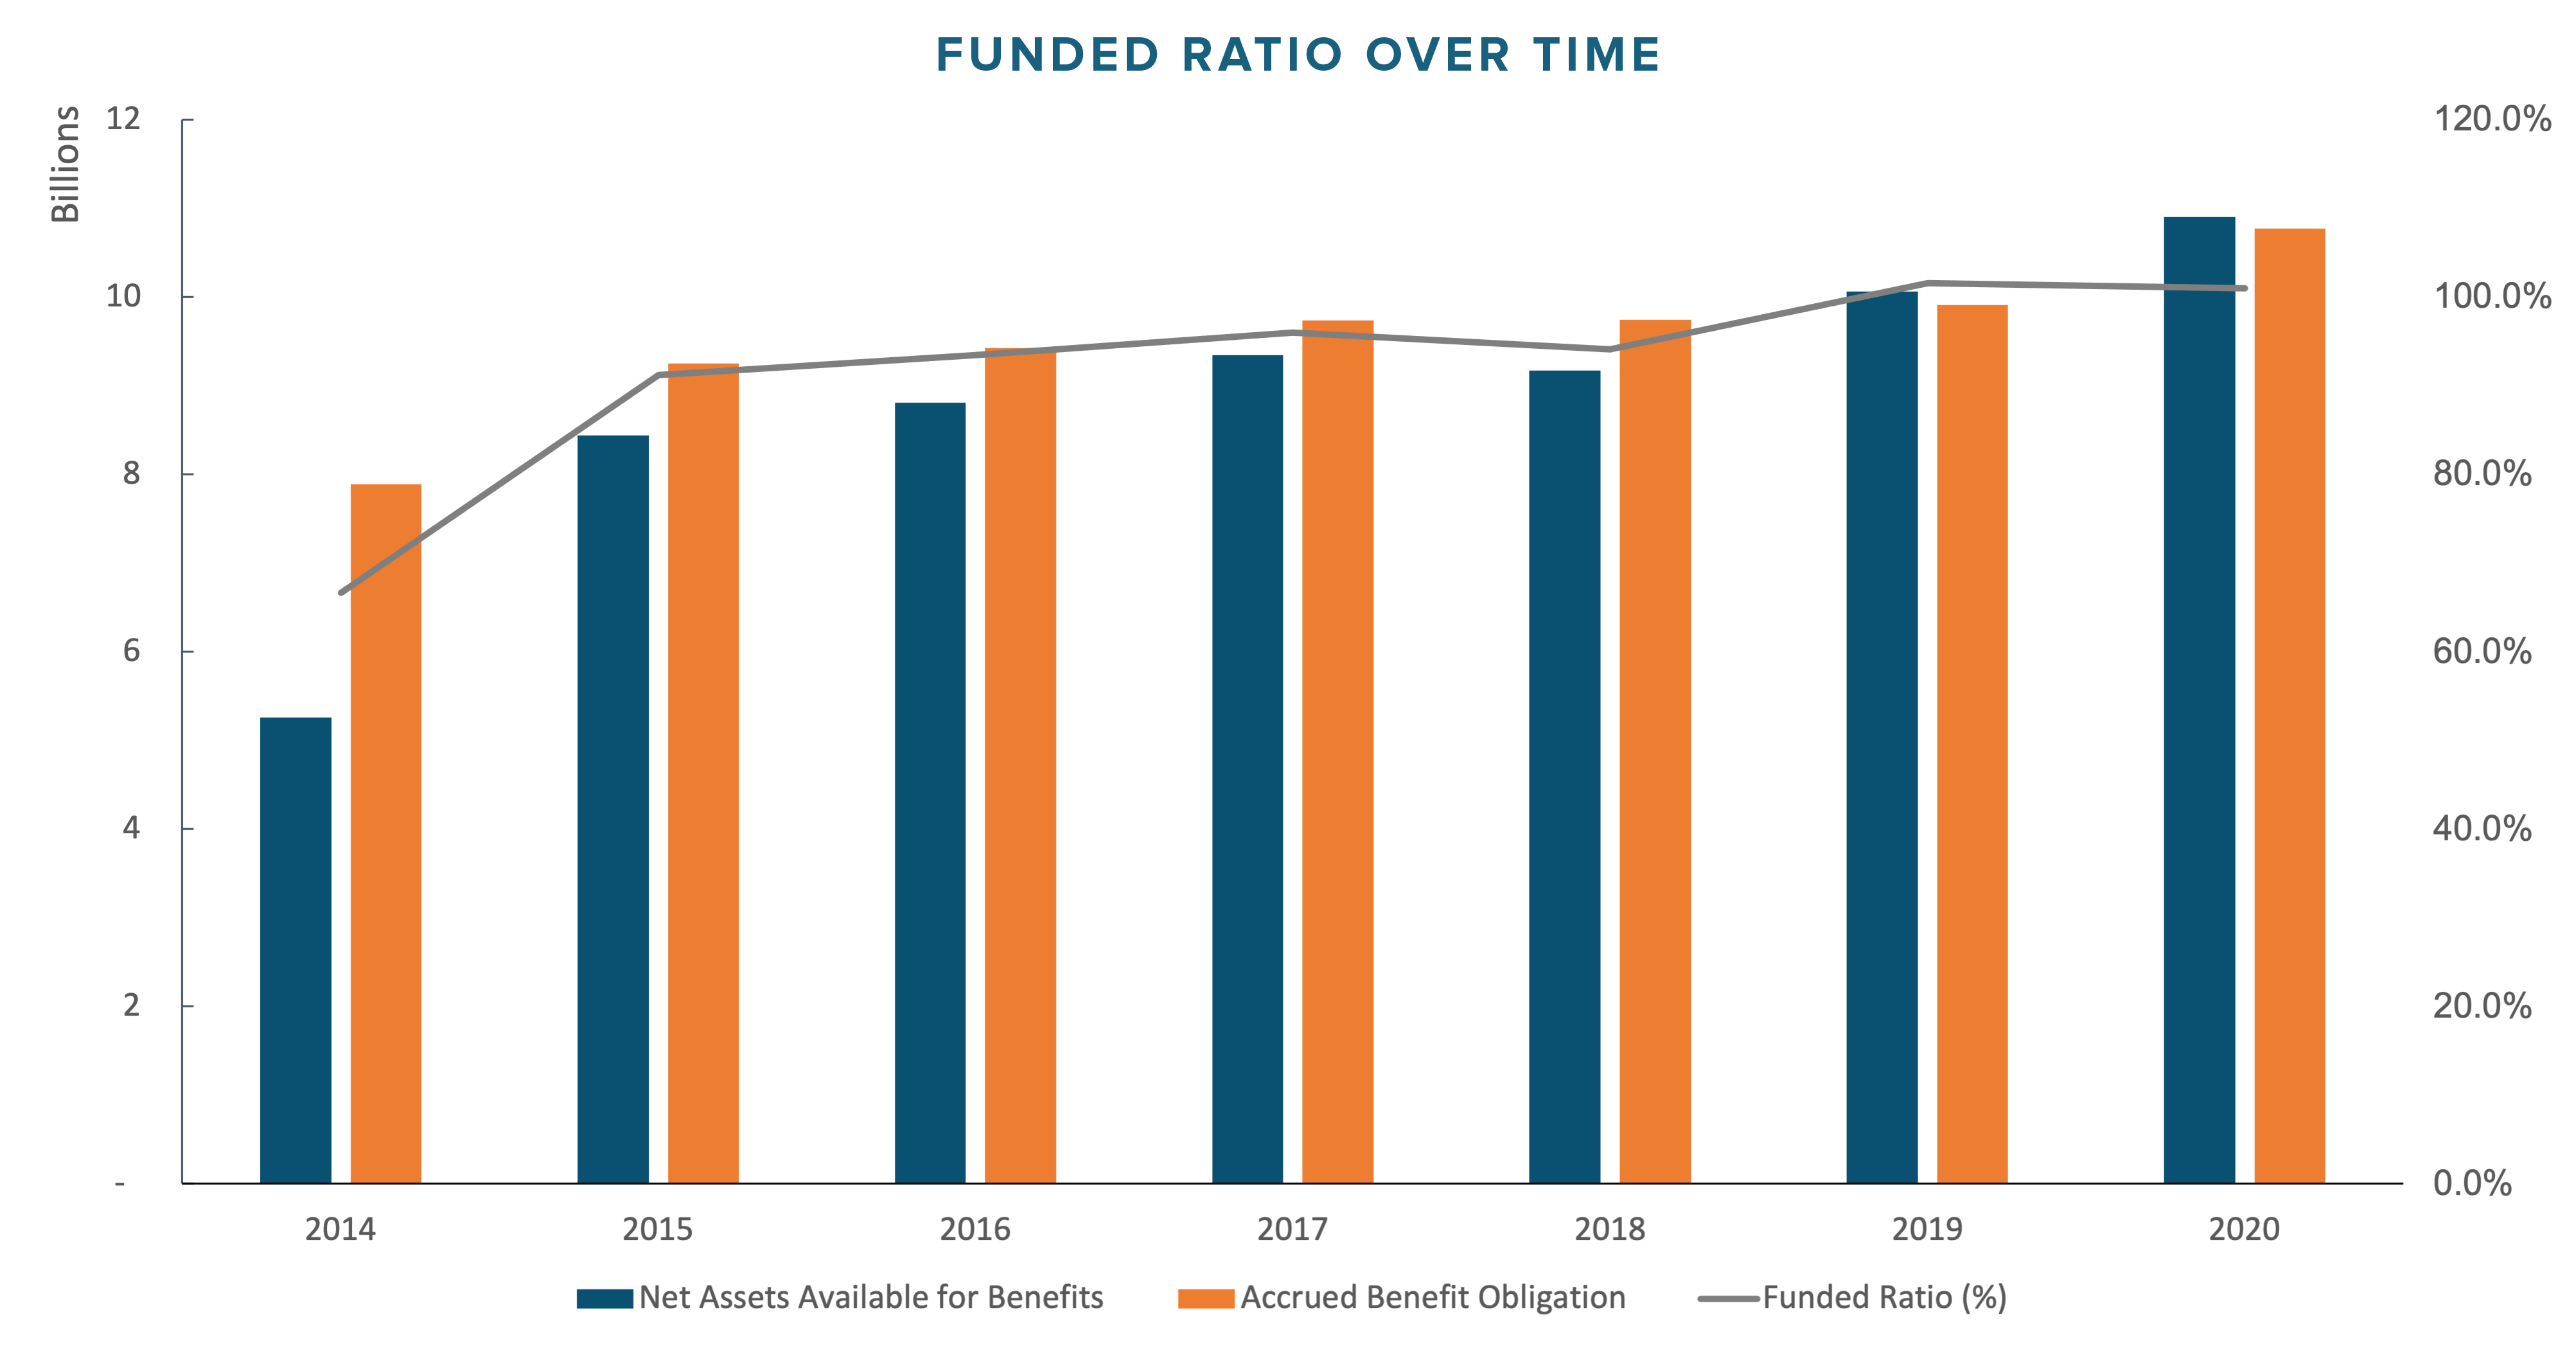 Funded Ratio over Time